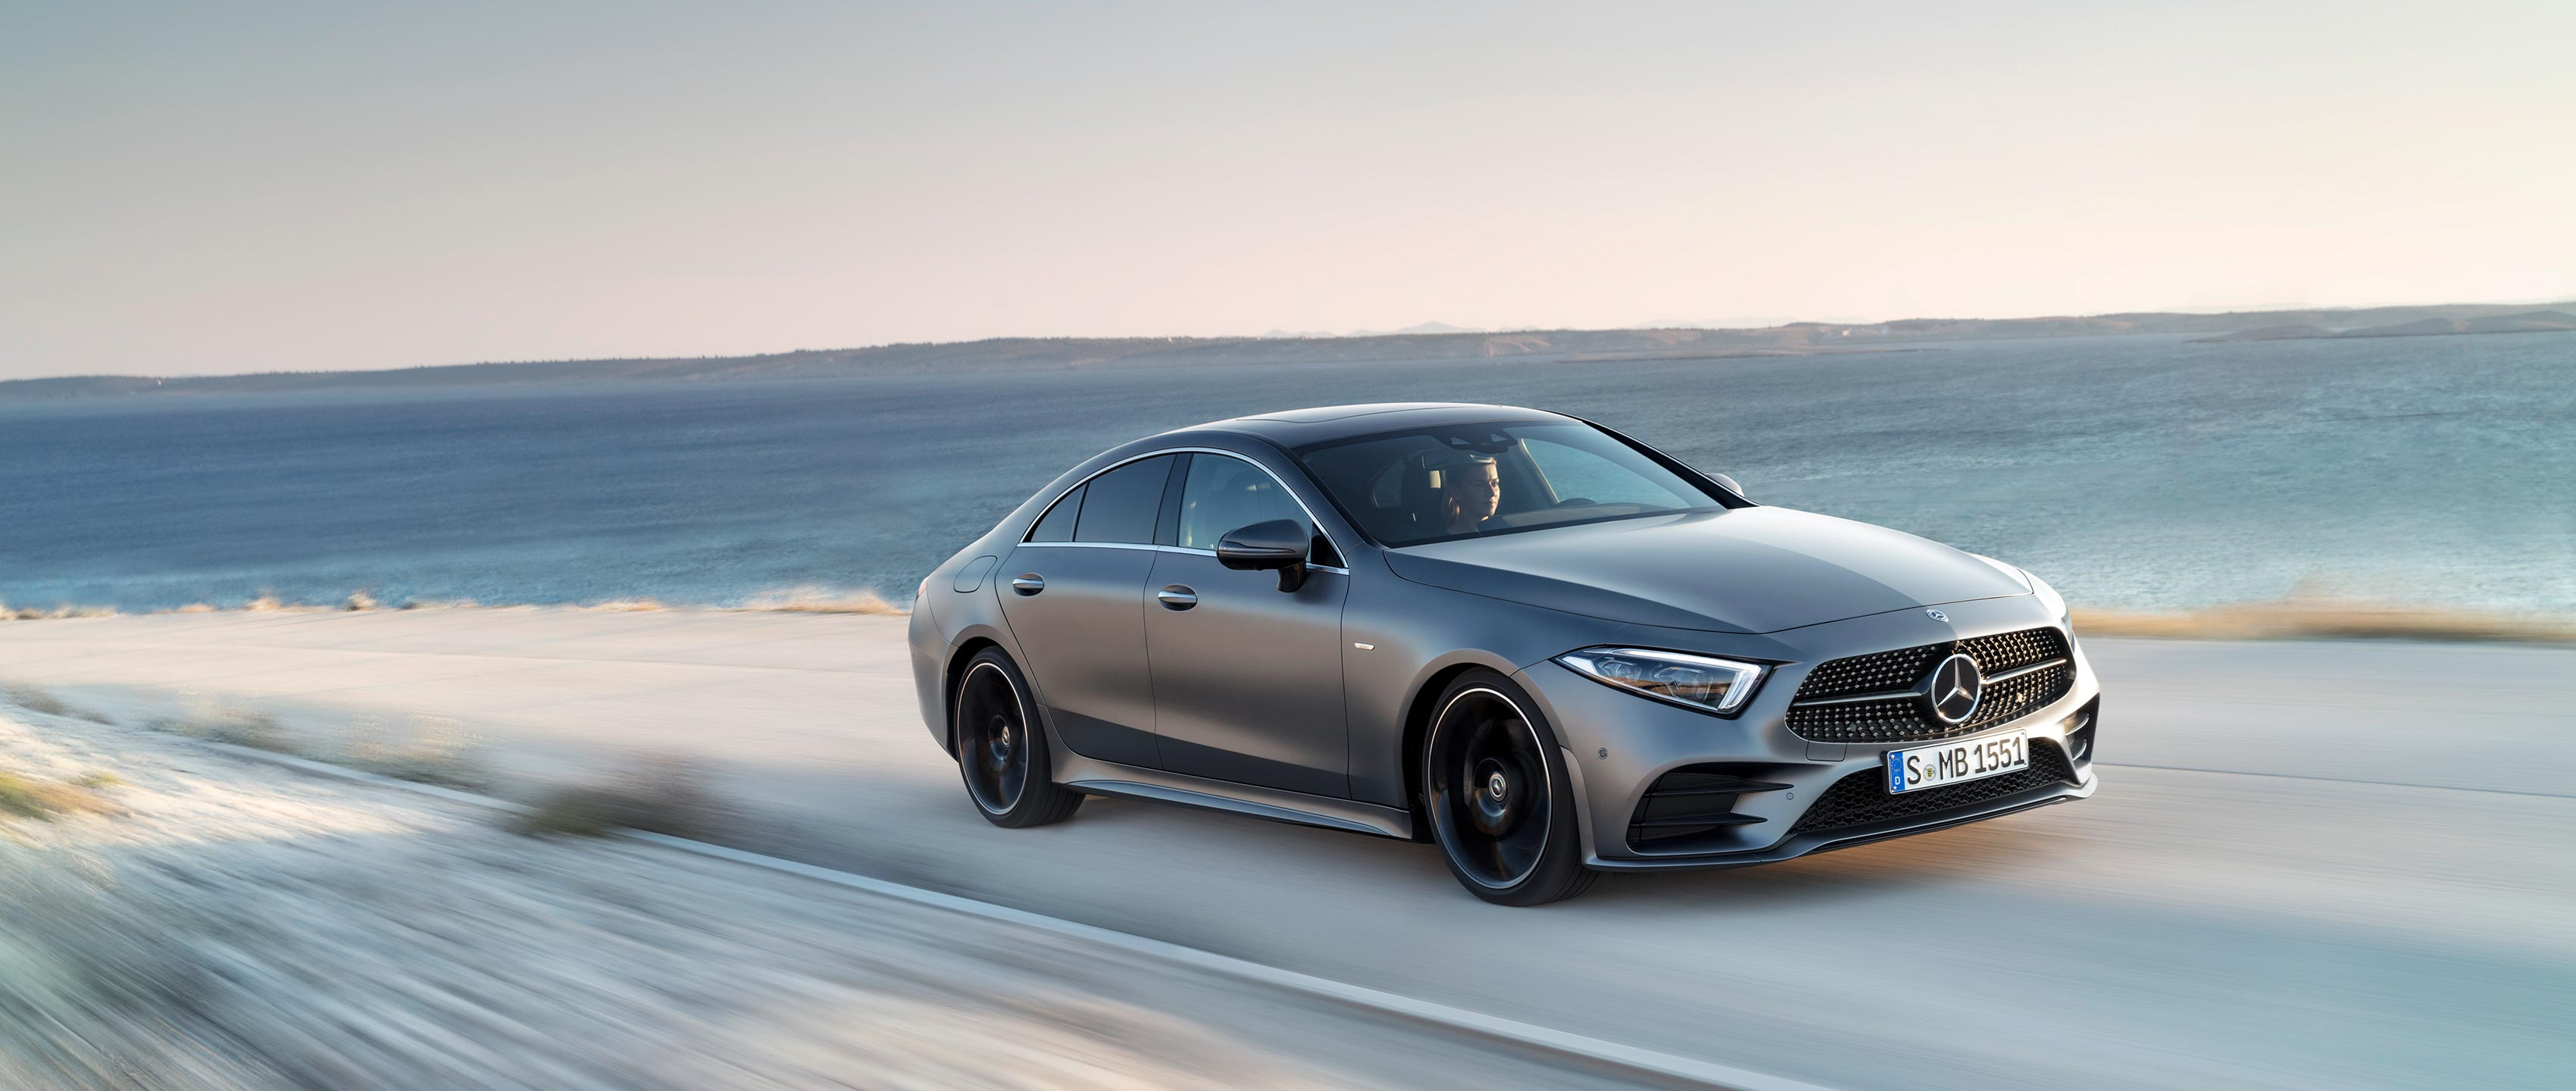 Car Sites Fresh Mercedes Benz Cls 2018 Third Generation Of the original